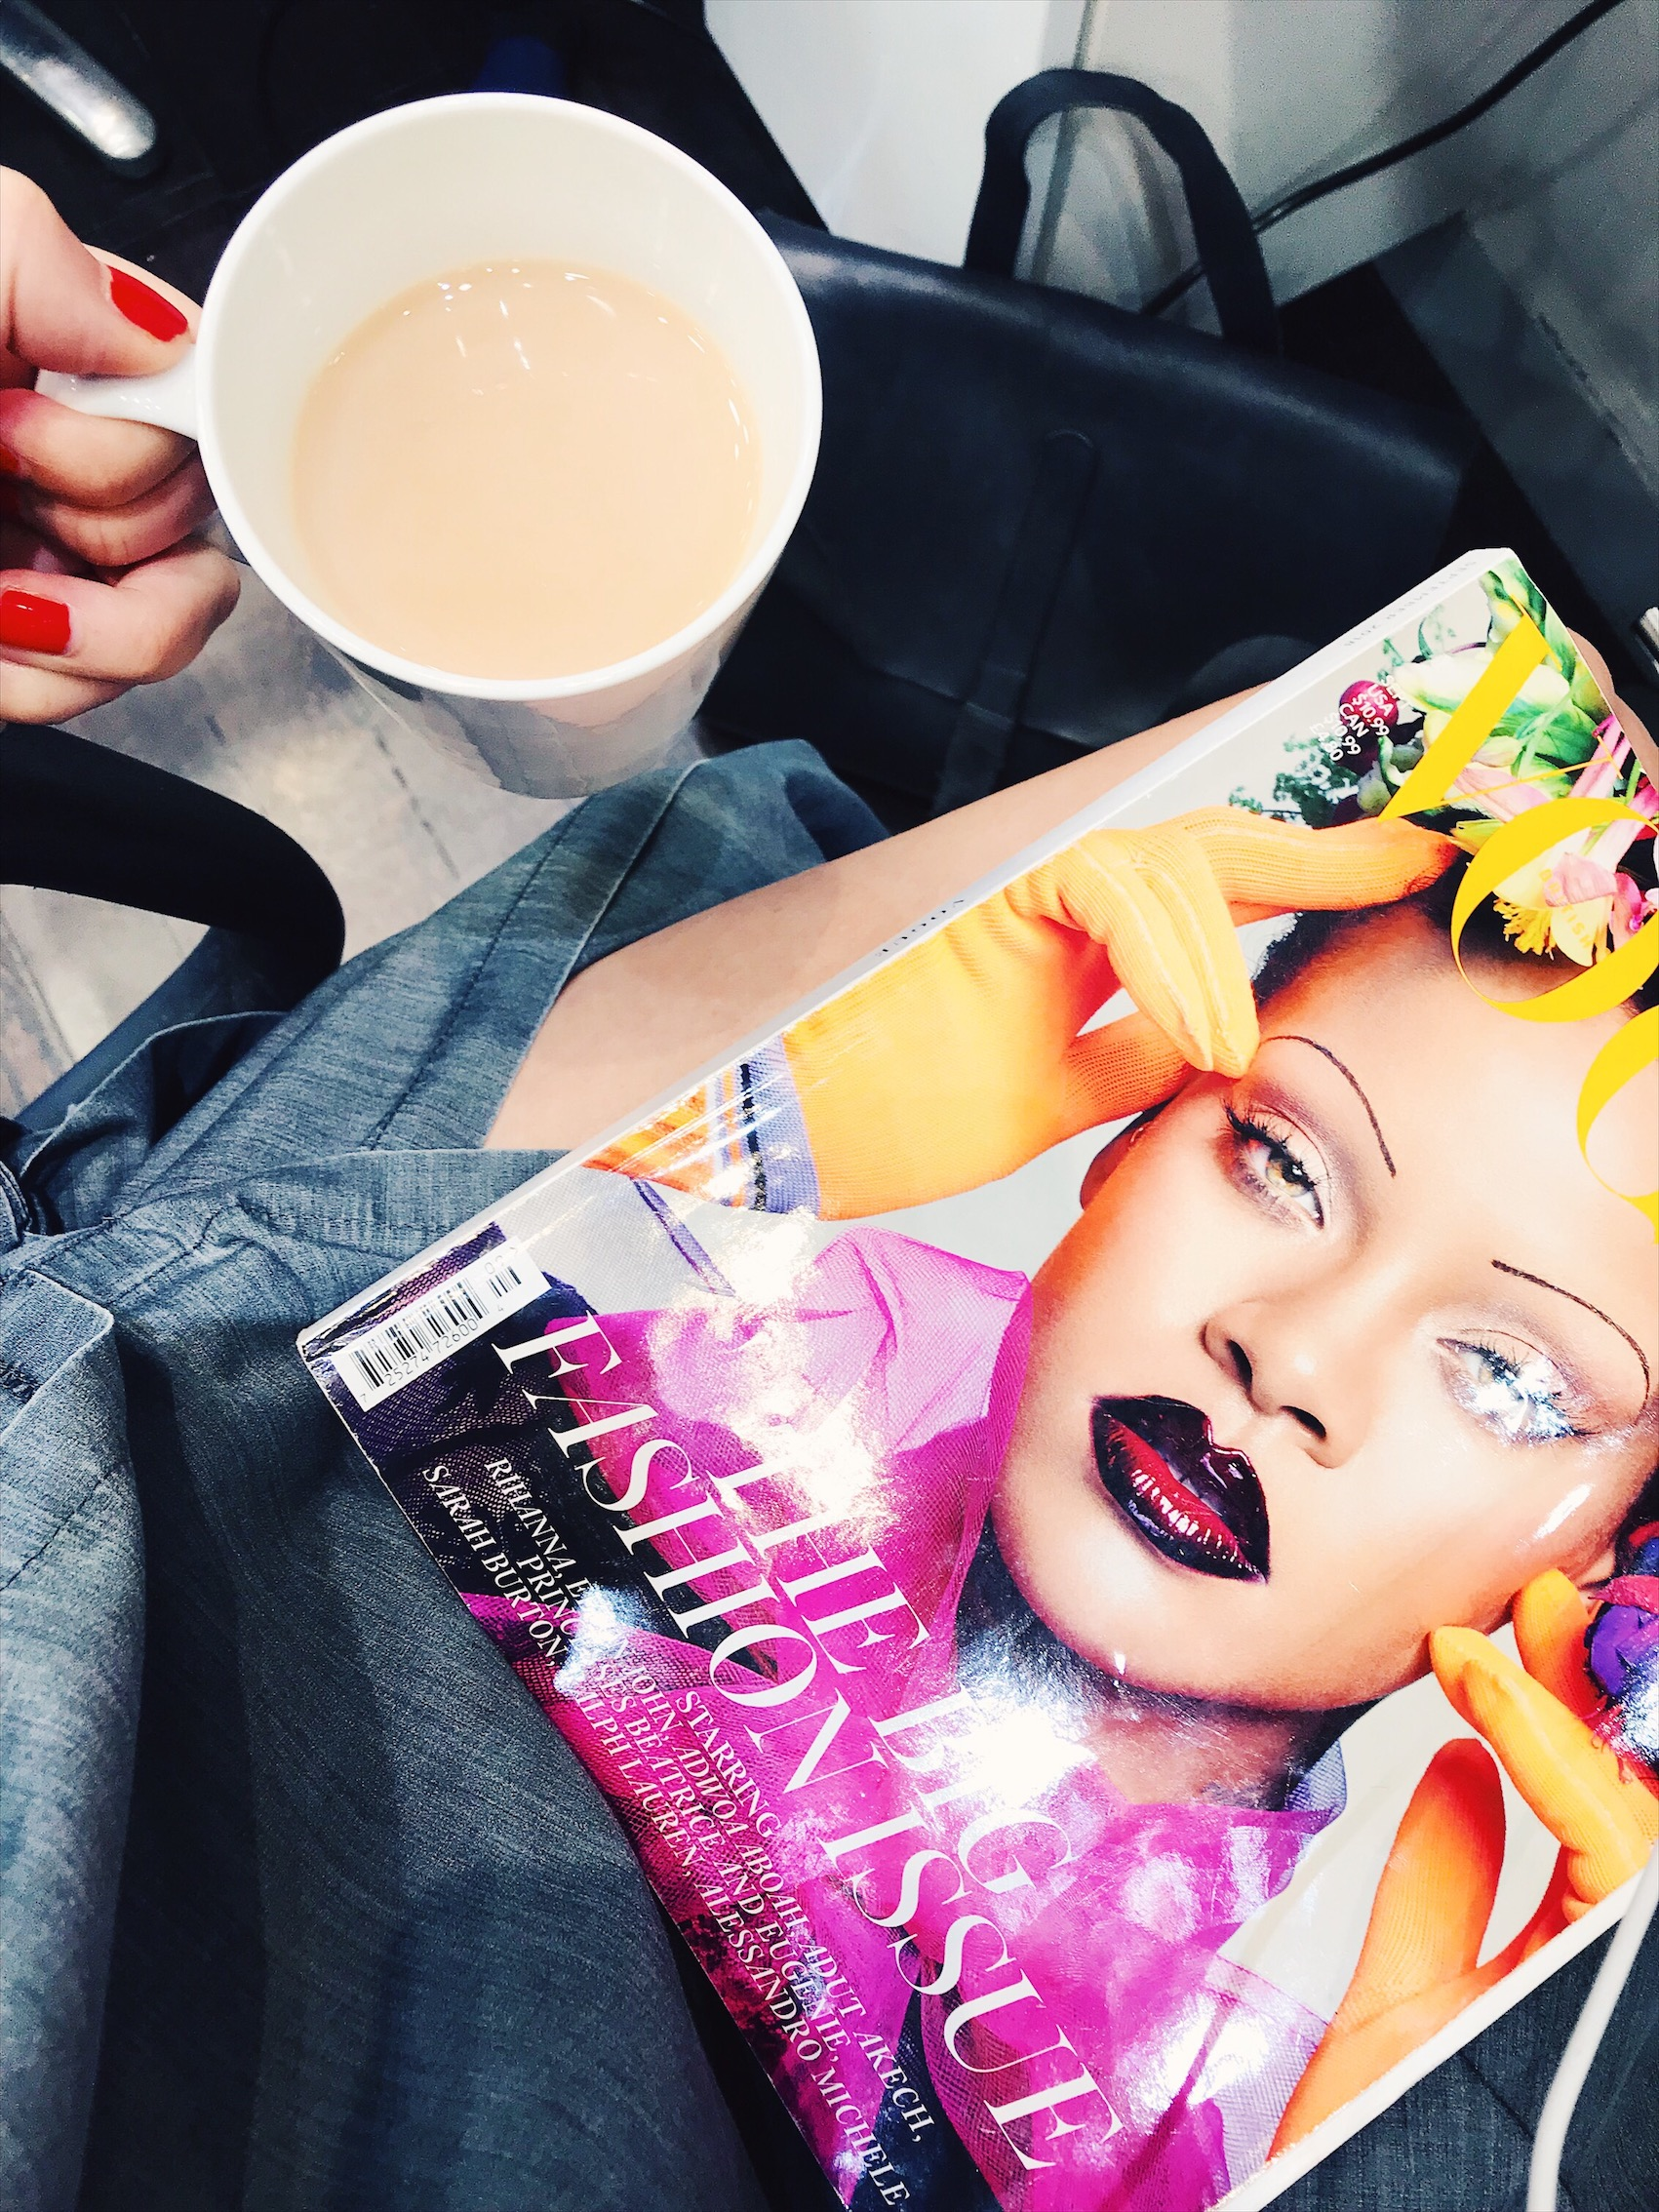 The September Issue. No, those brows are NOT making a come-back. Not on my watch!